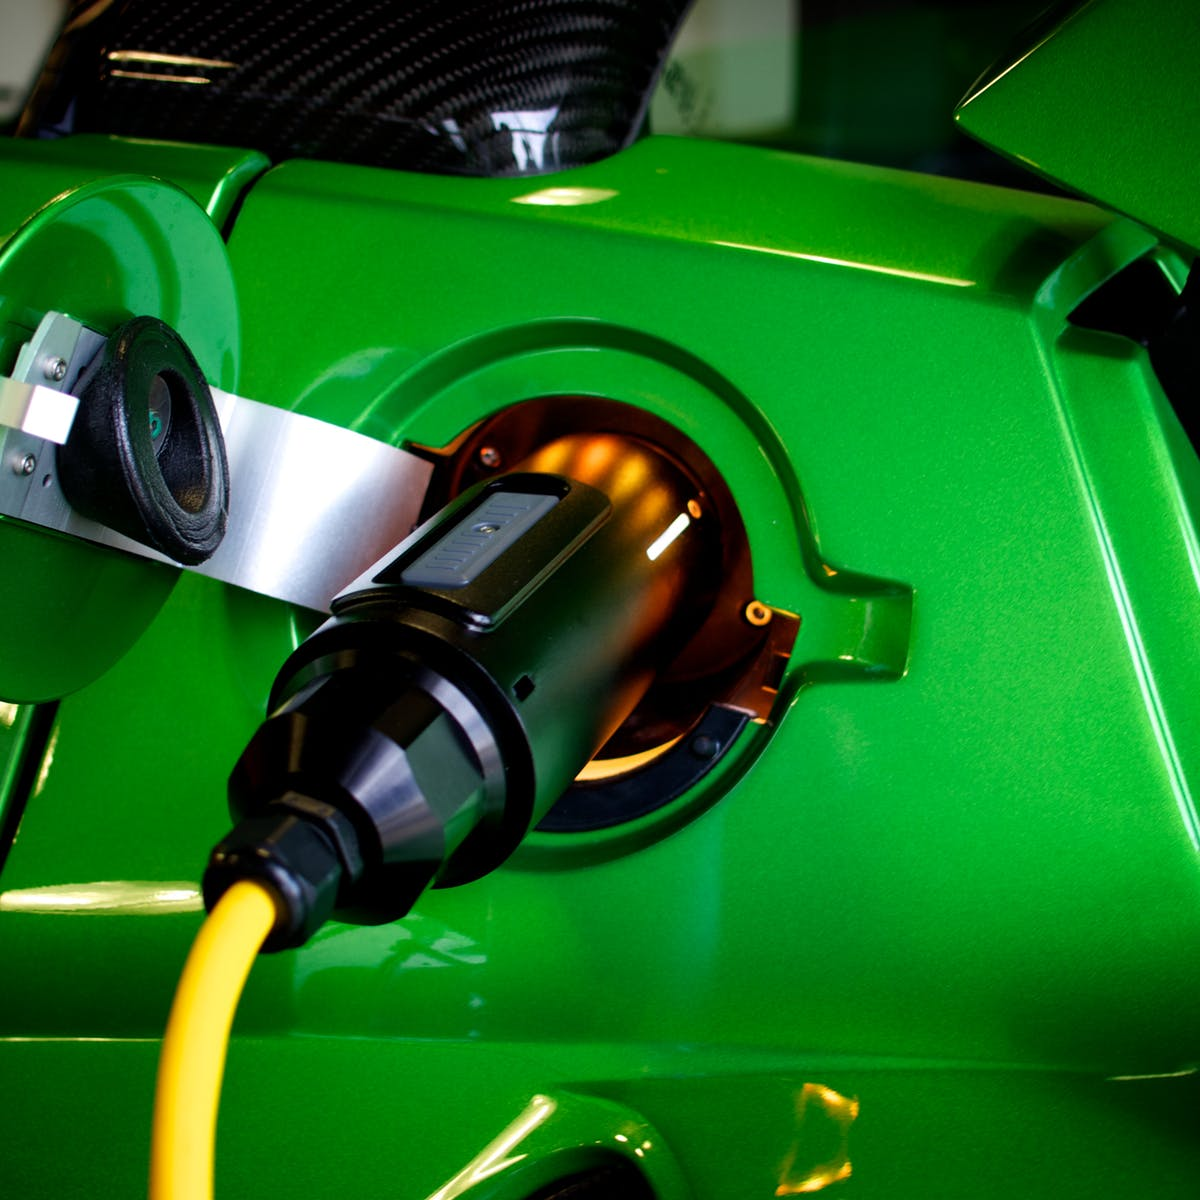 Not so fast: why the electric vehicle revolution will bring